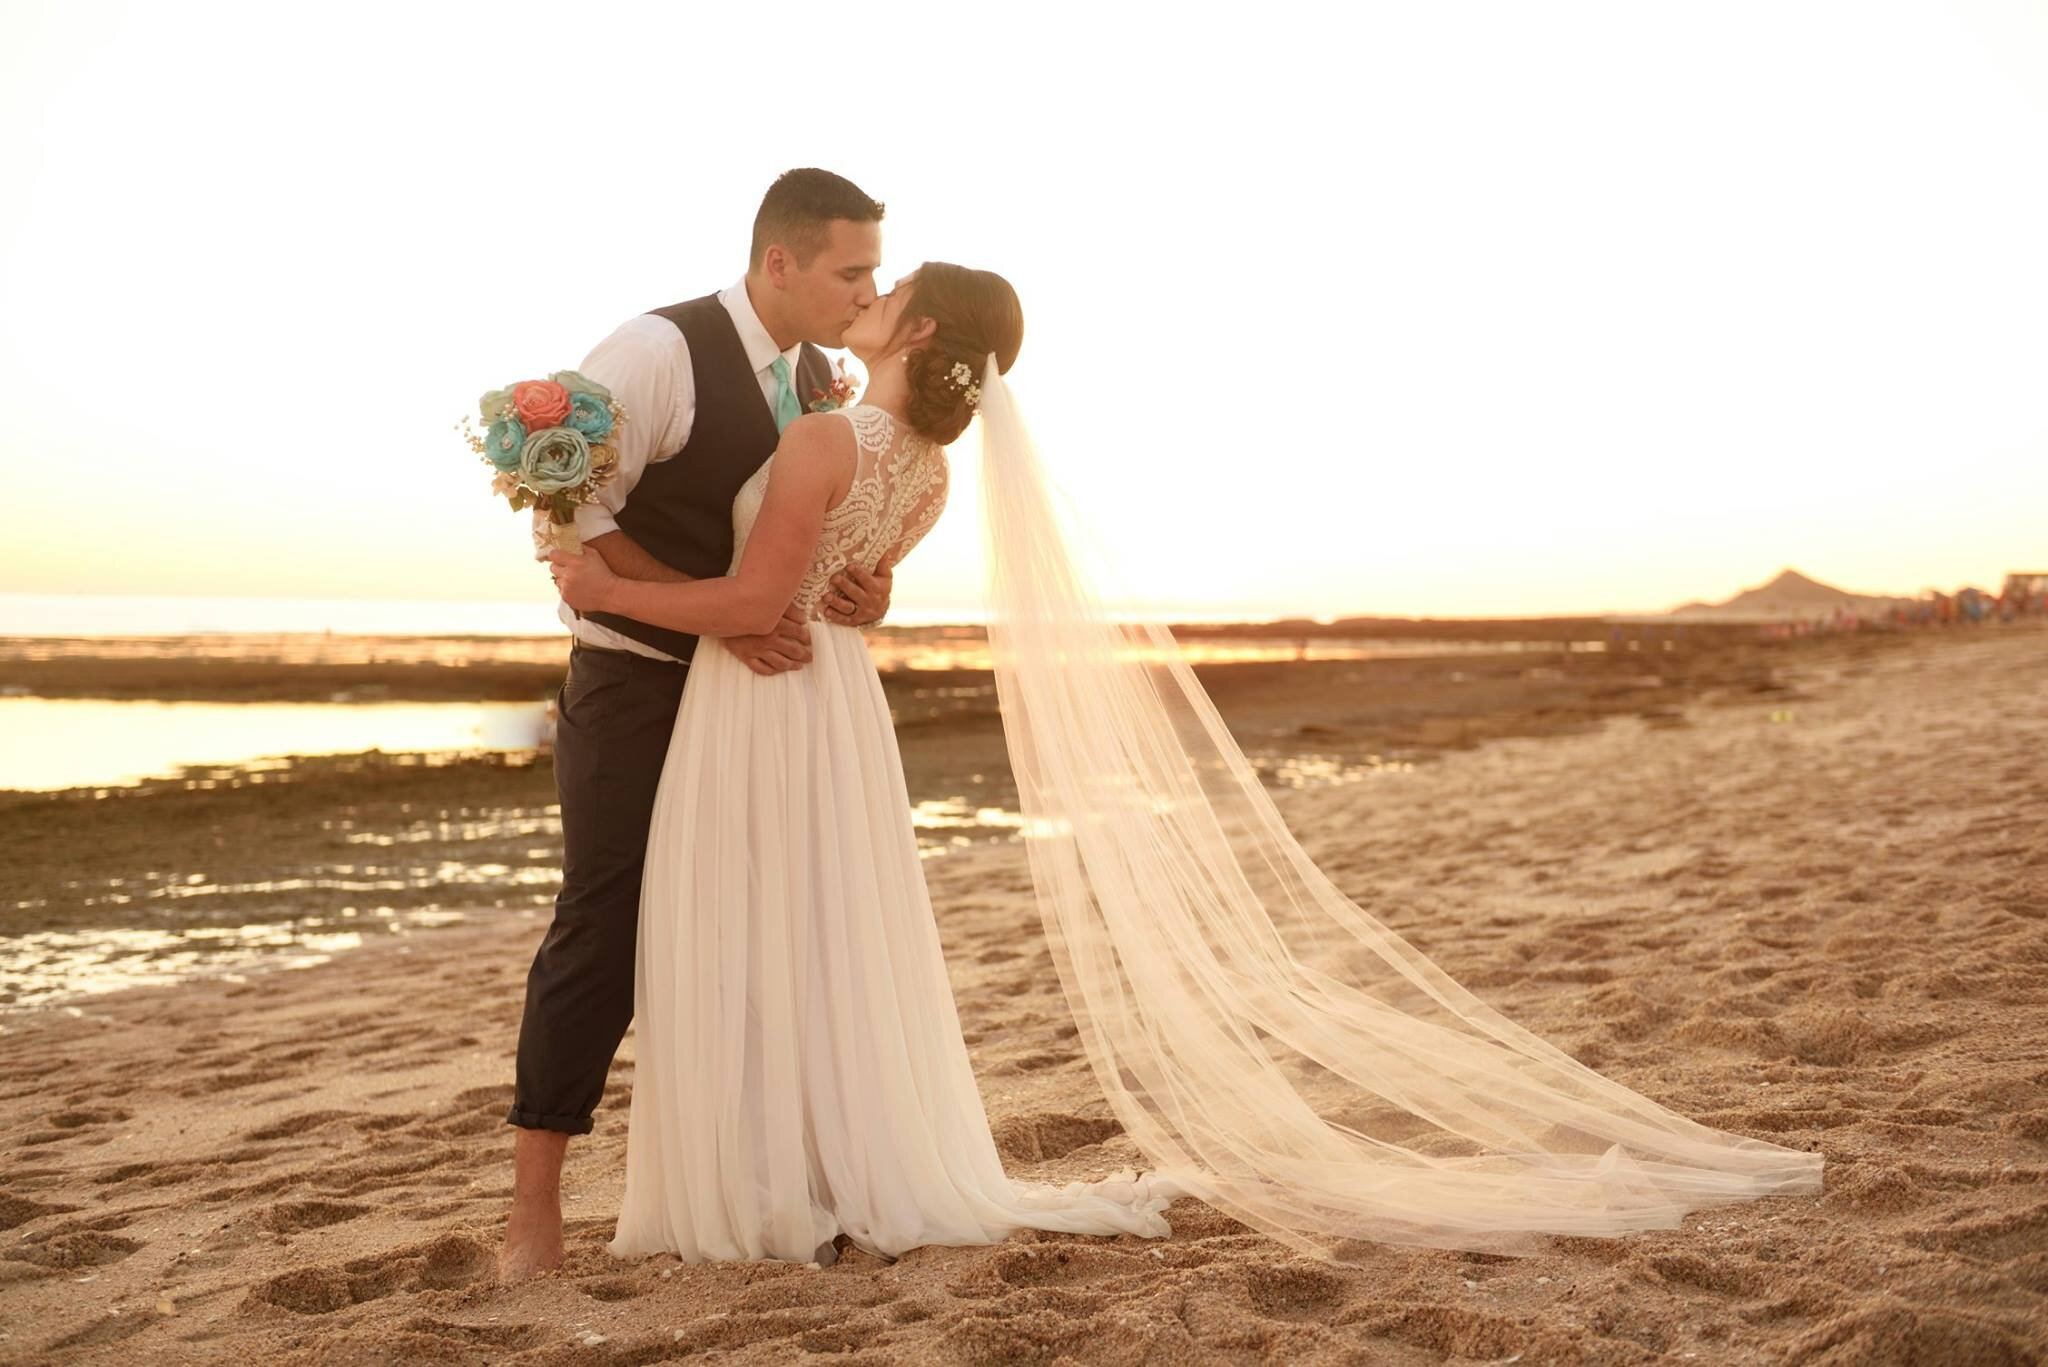 Bride and groom kissing at the beach wedding wearing bohemian lace custom made bridal gown with long veil.jpg